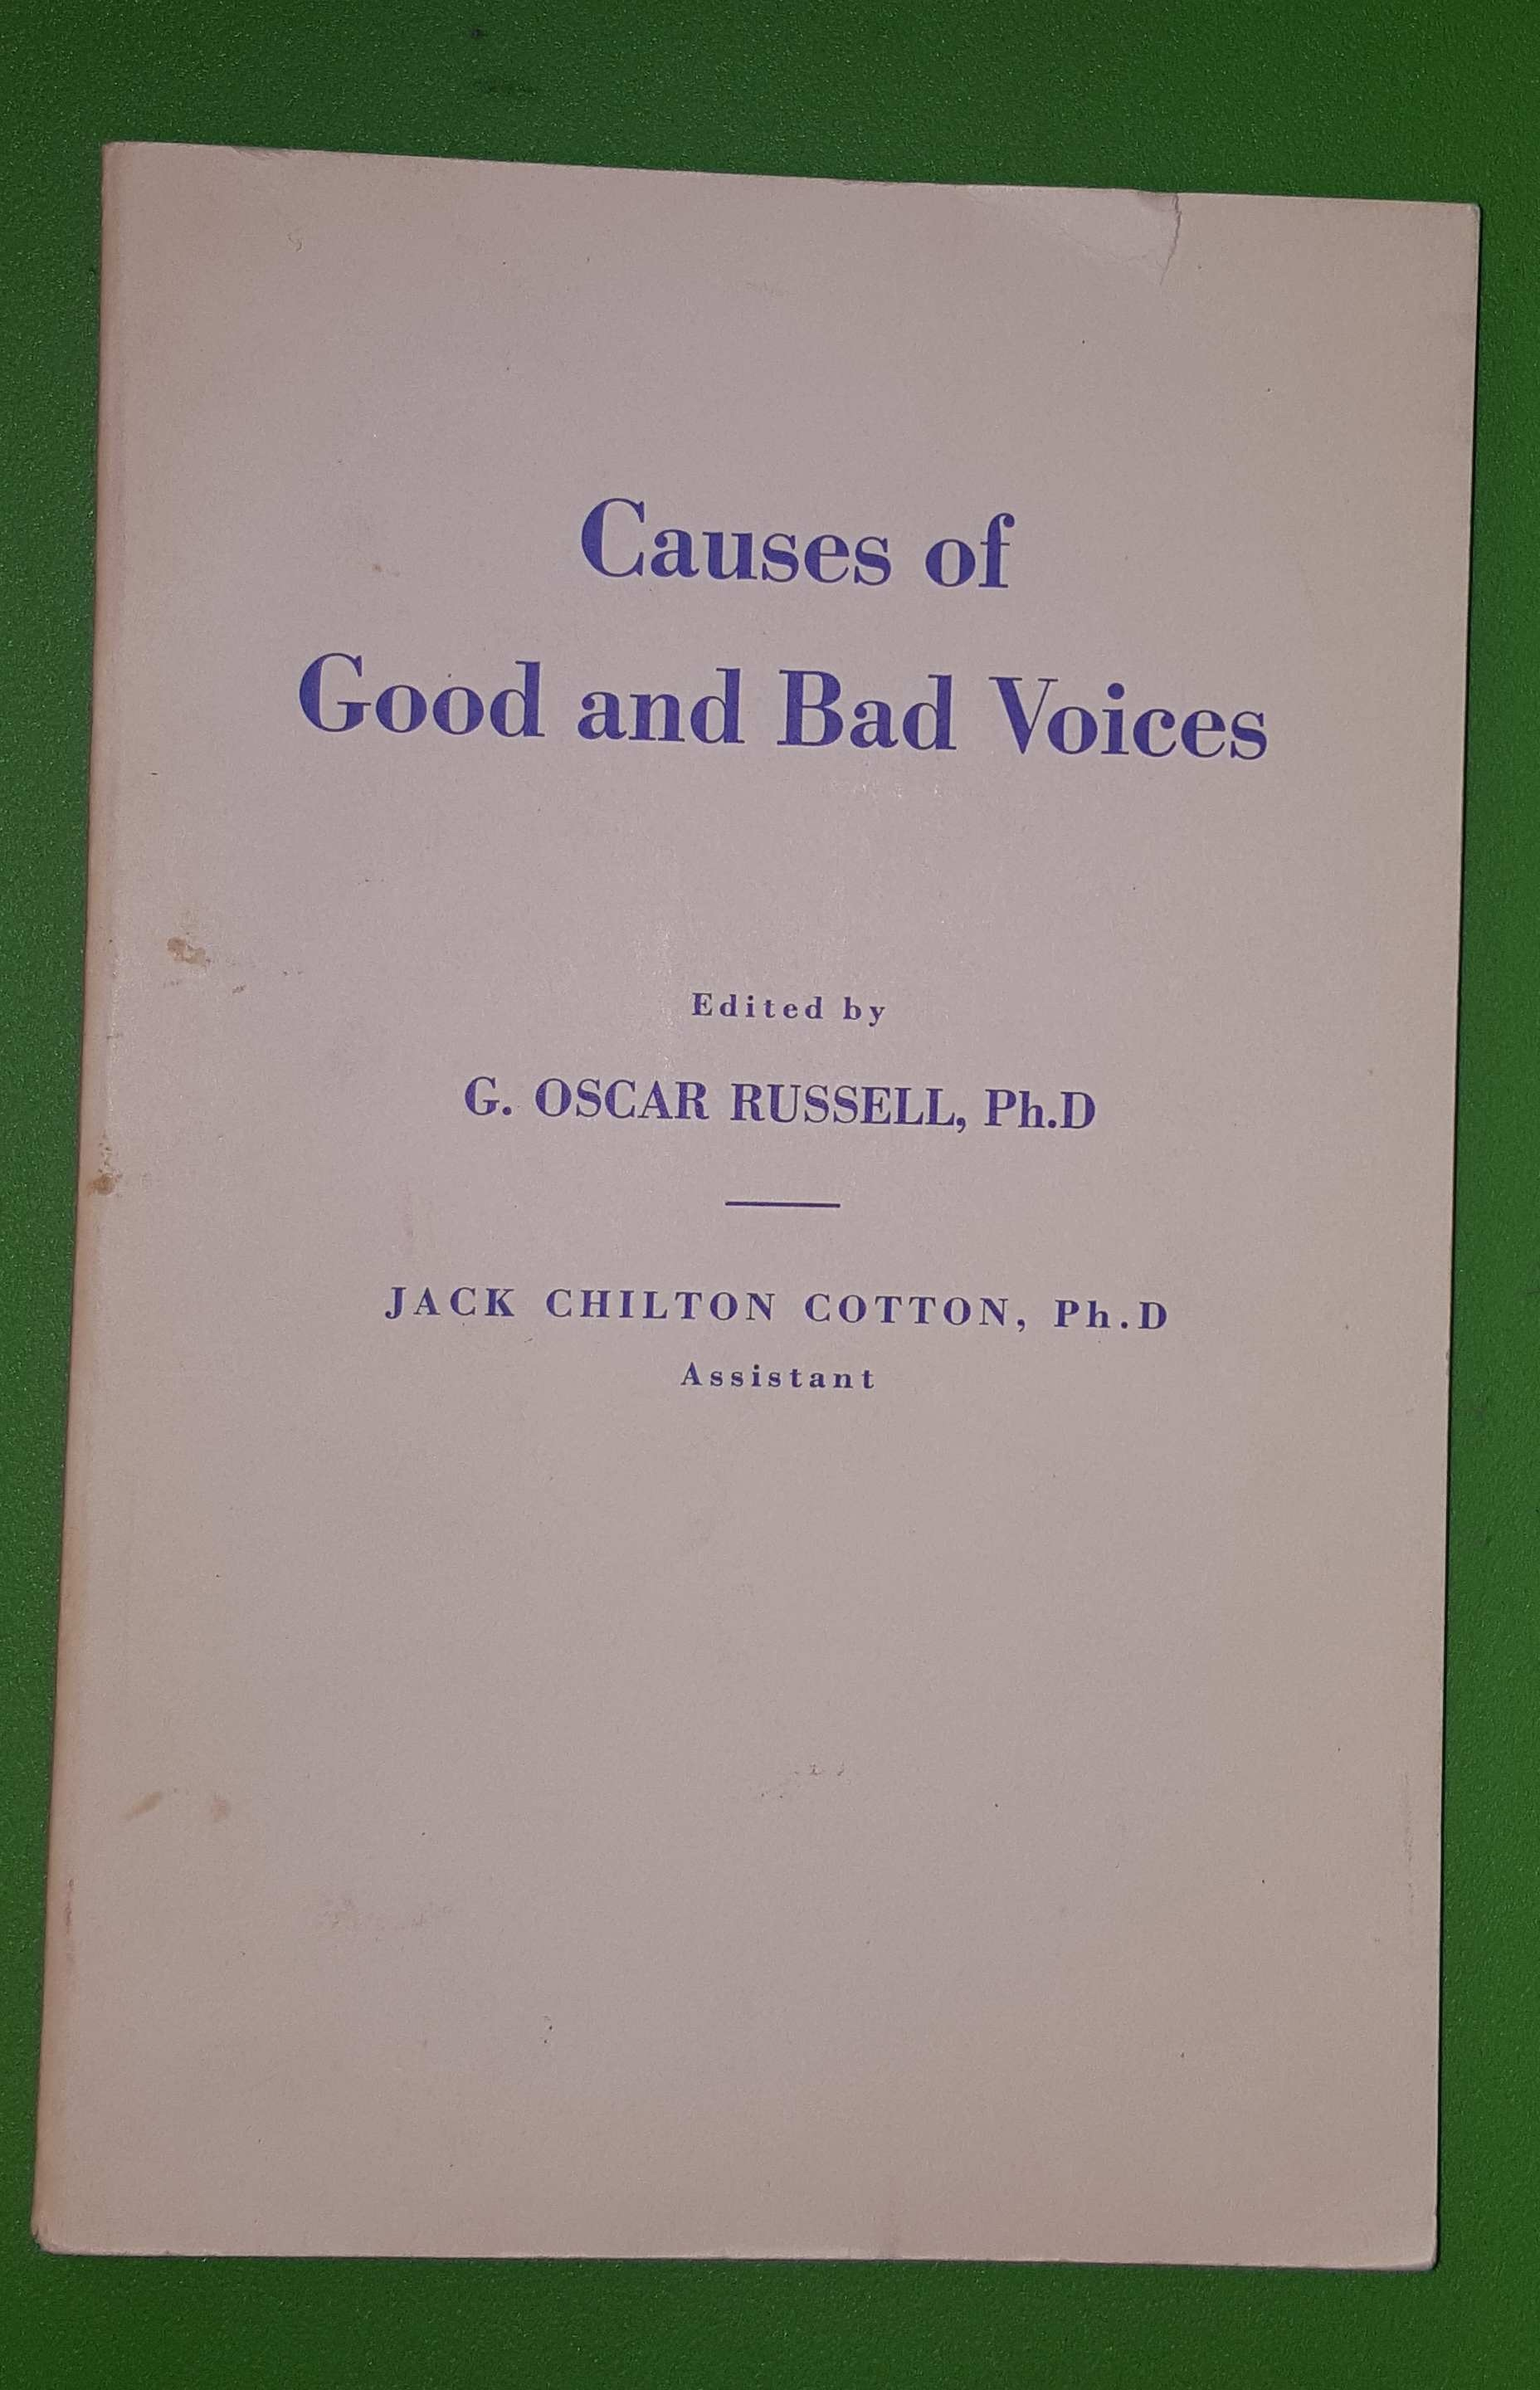 Image for CAUSES OF GOOD AND BAD VOICES